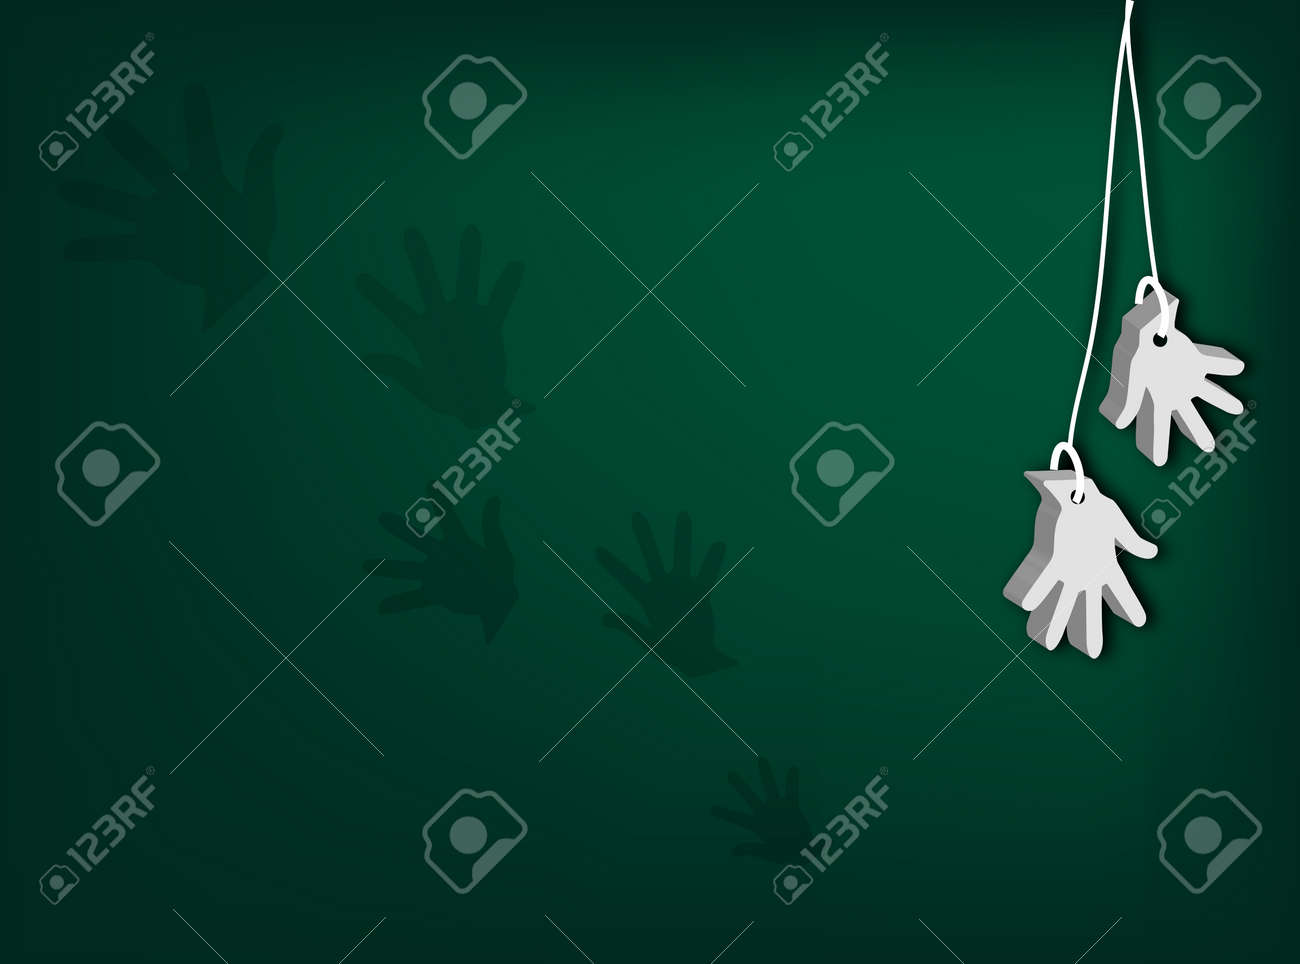 An Illustration of White Artificial Open Hand for Surrender Hand Signal or Retirement Hanging from Cord on Dark Green Background Stock Vector - 17544215